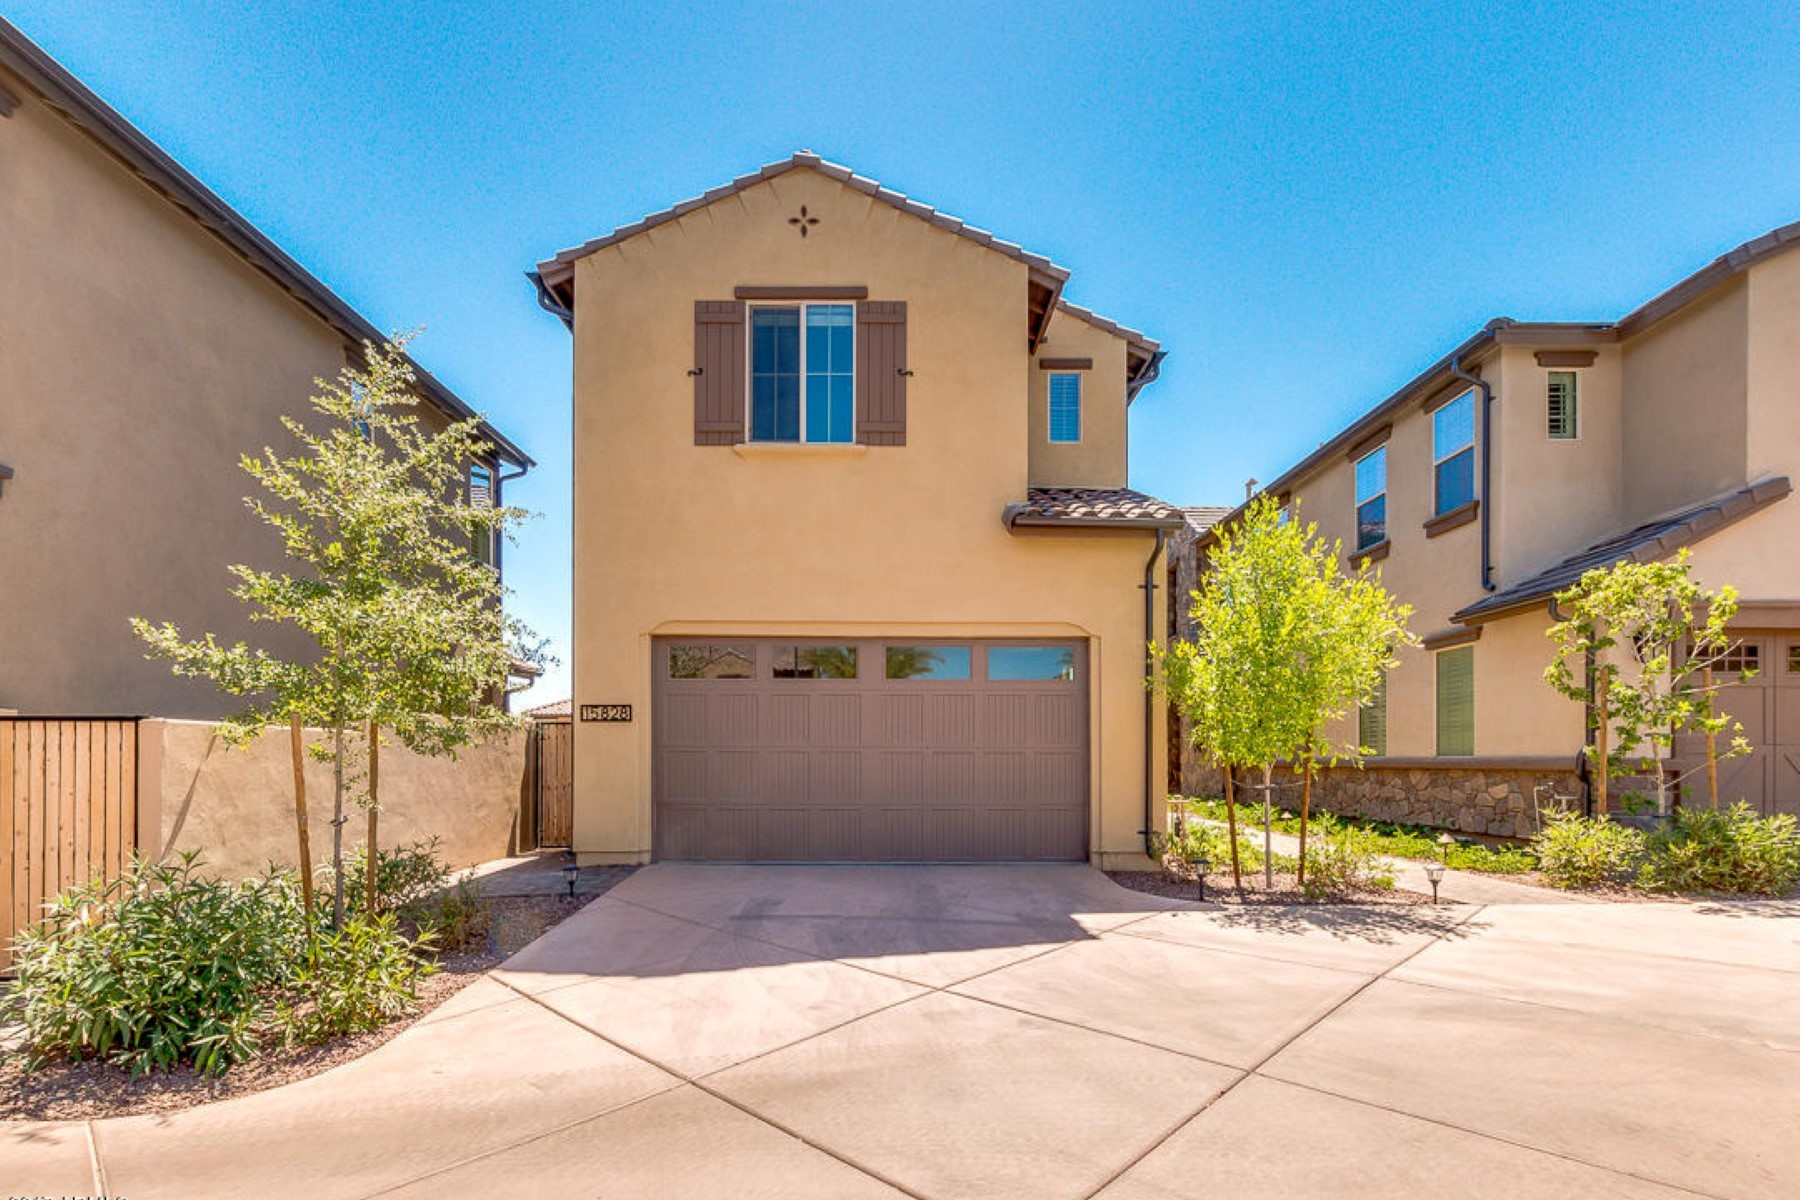 Single Family Home for Sale at Resort style living with stunning views 15828 S 12th Way Phoenix, Arizona, 85048 United States